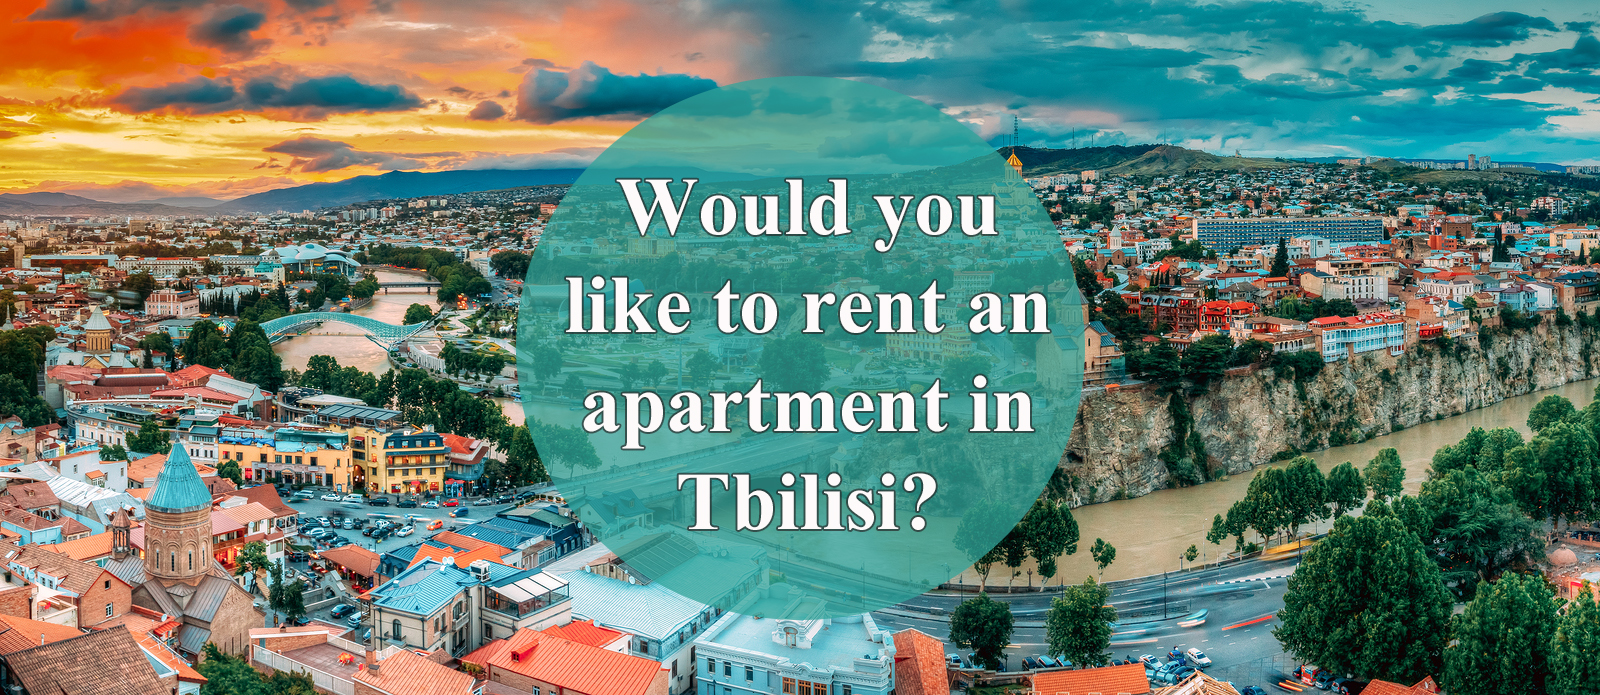 Would you like to rent an apartment in Tbilisi?